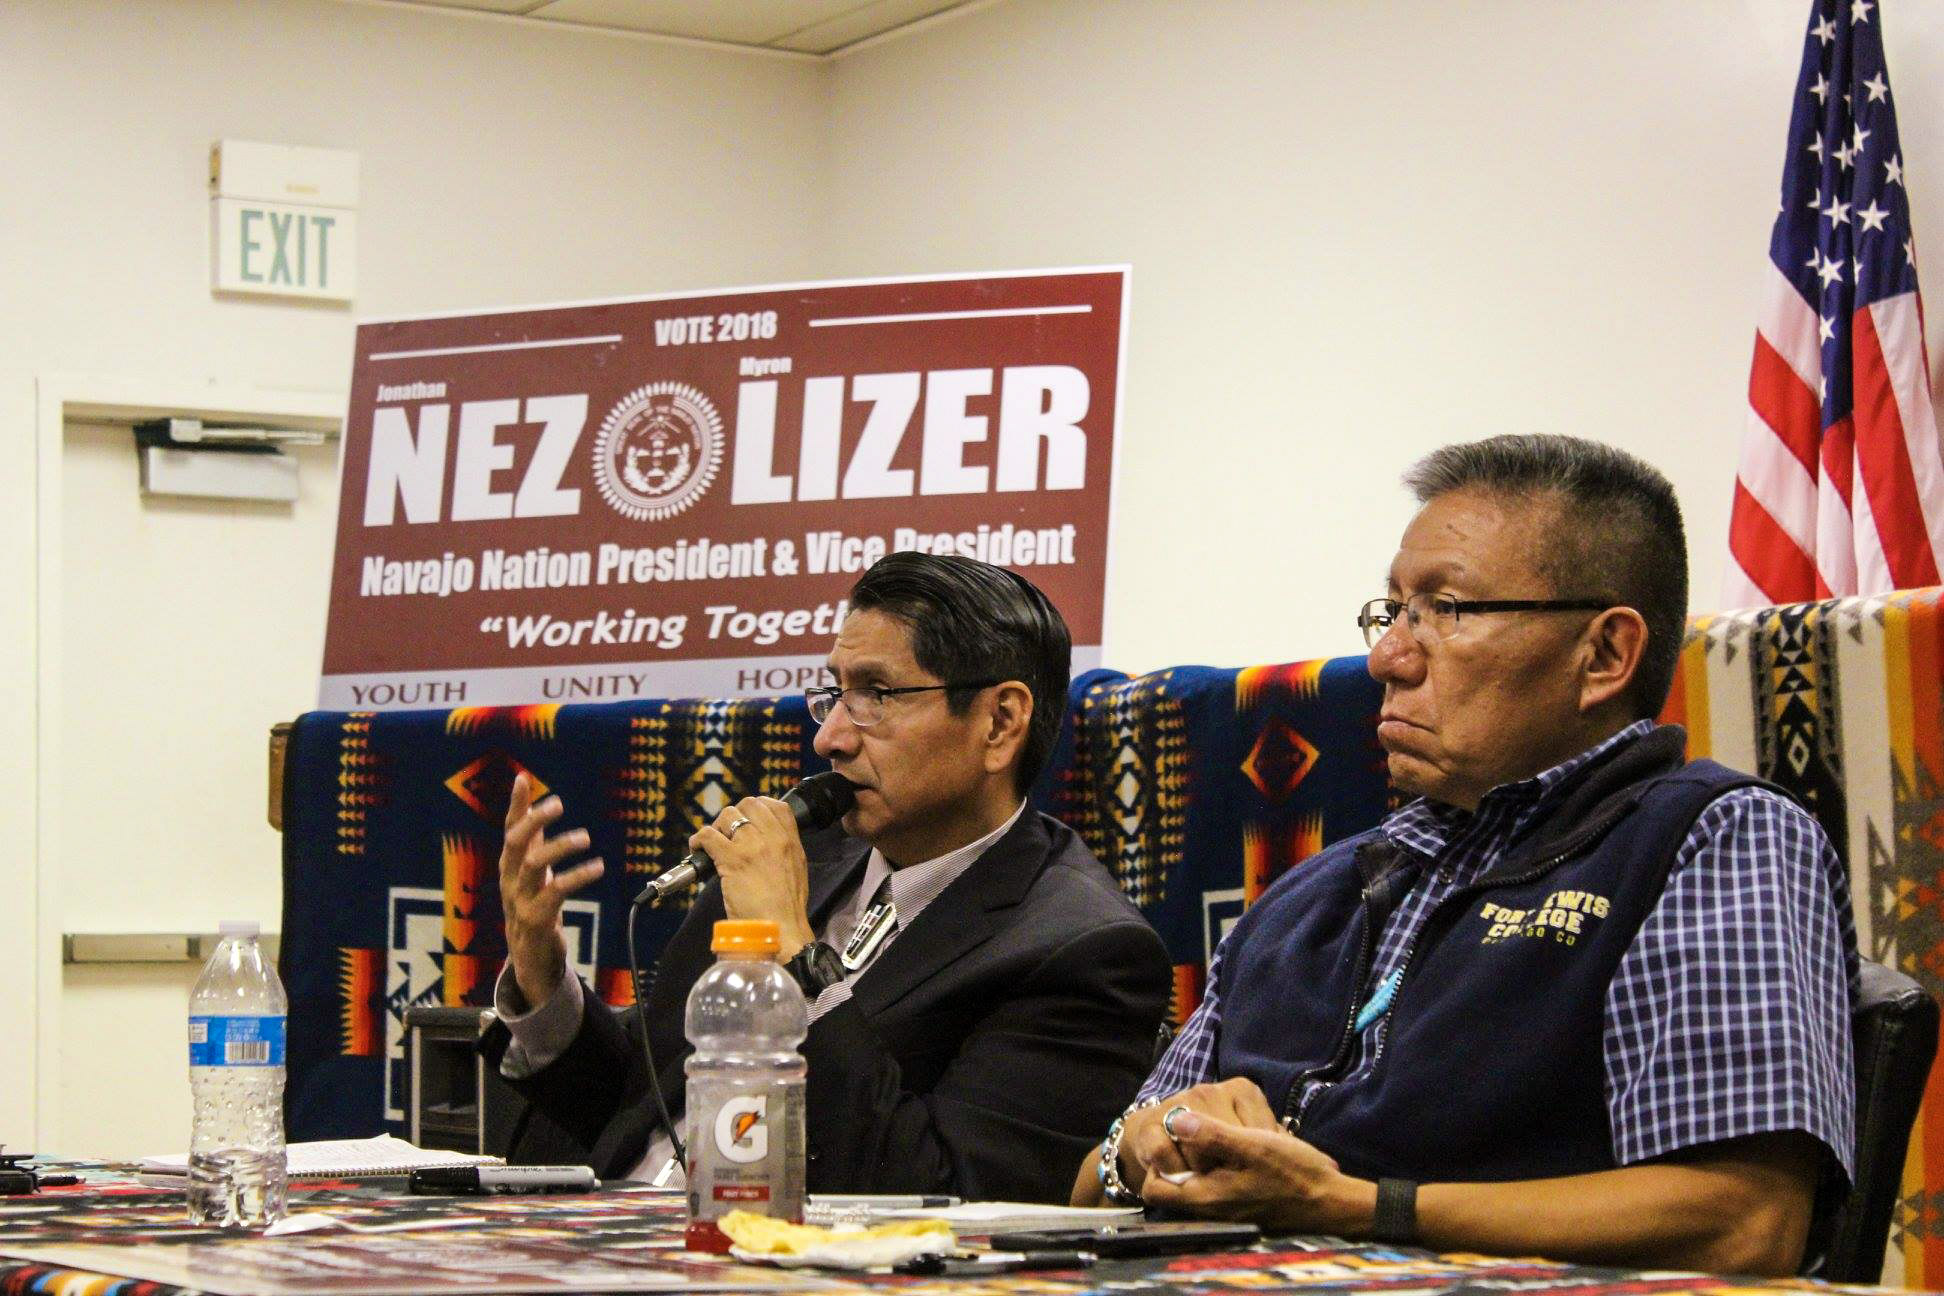 Jonathan Nez and Myron Lizer: A 'sad day' for the Navajo Nation